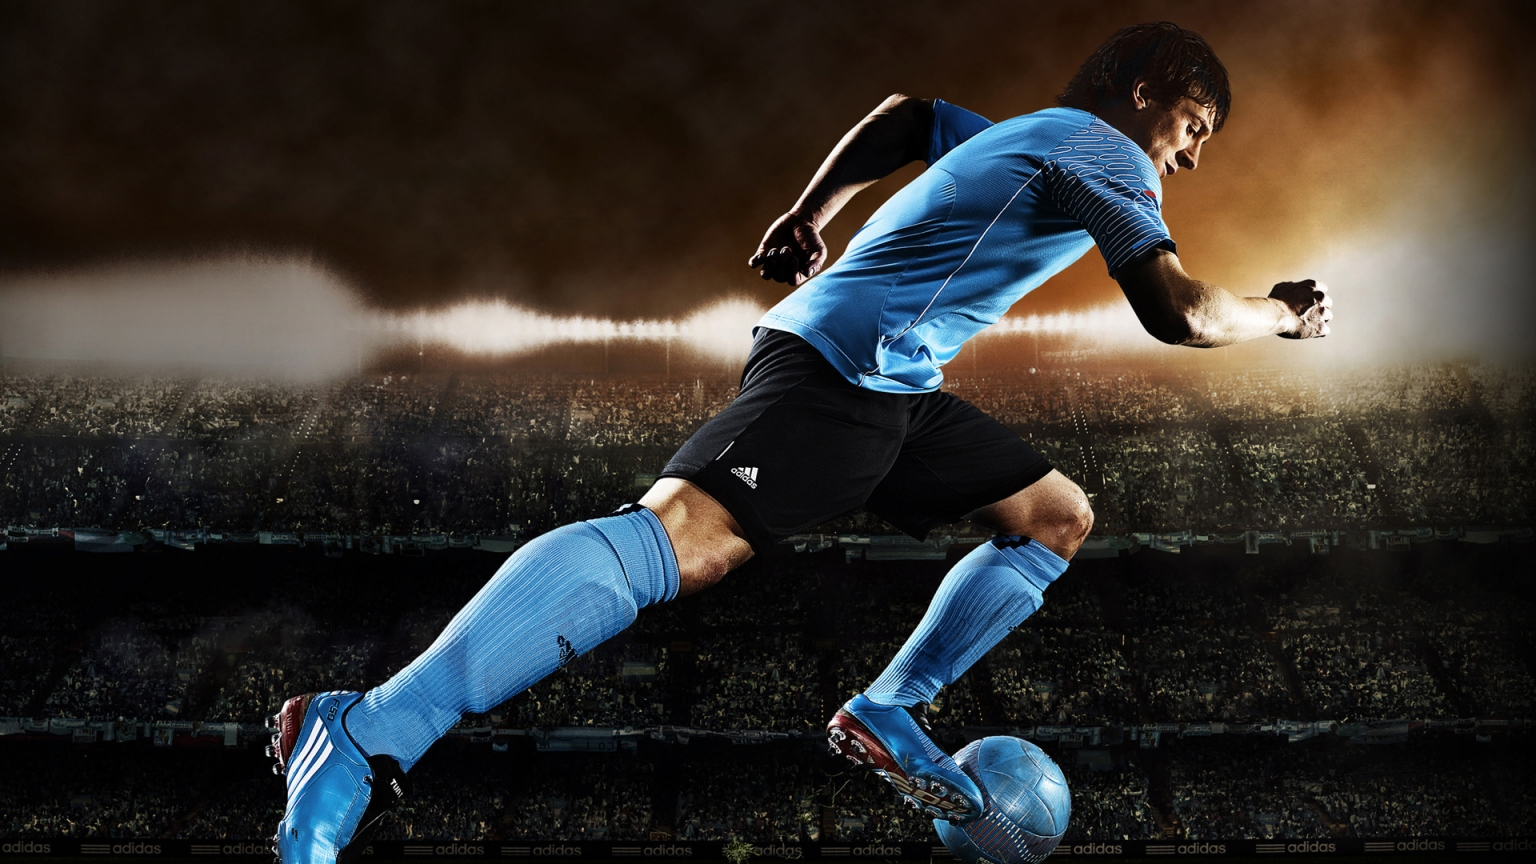 Lionel Messi Adidas for 1536 x 864 HDTV resolution